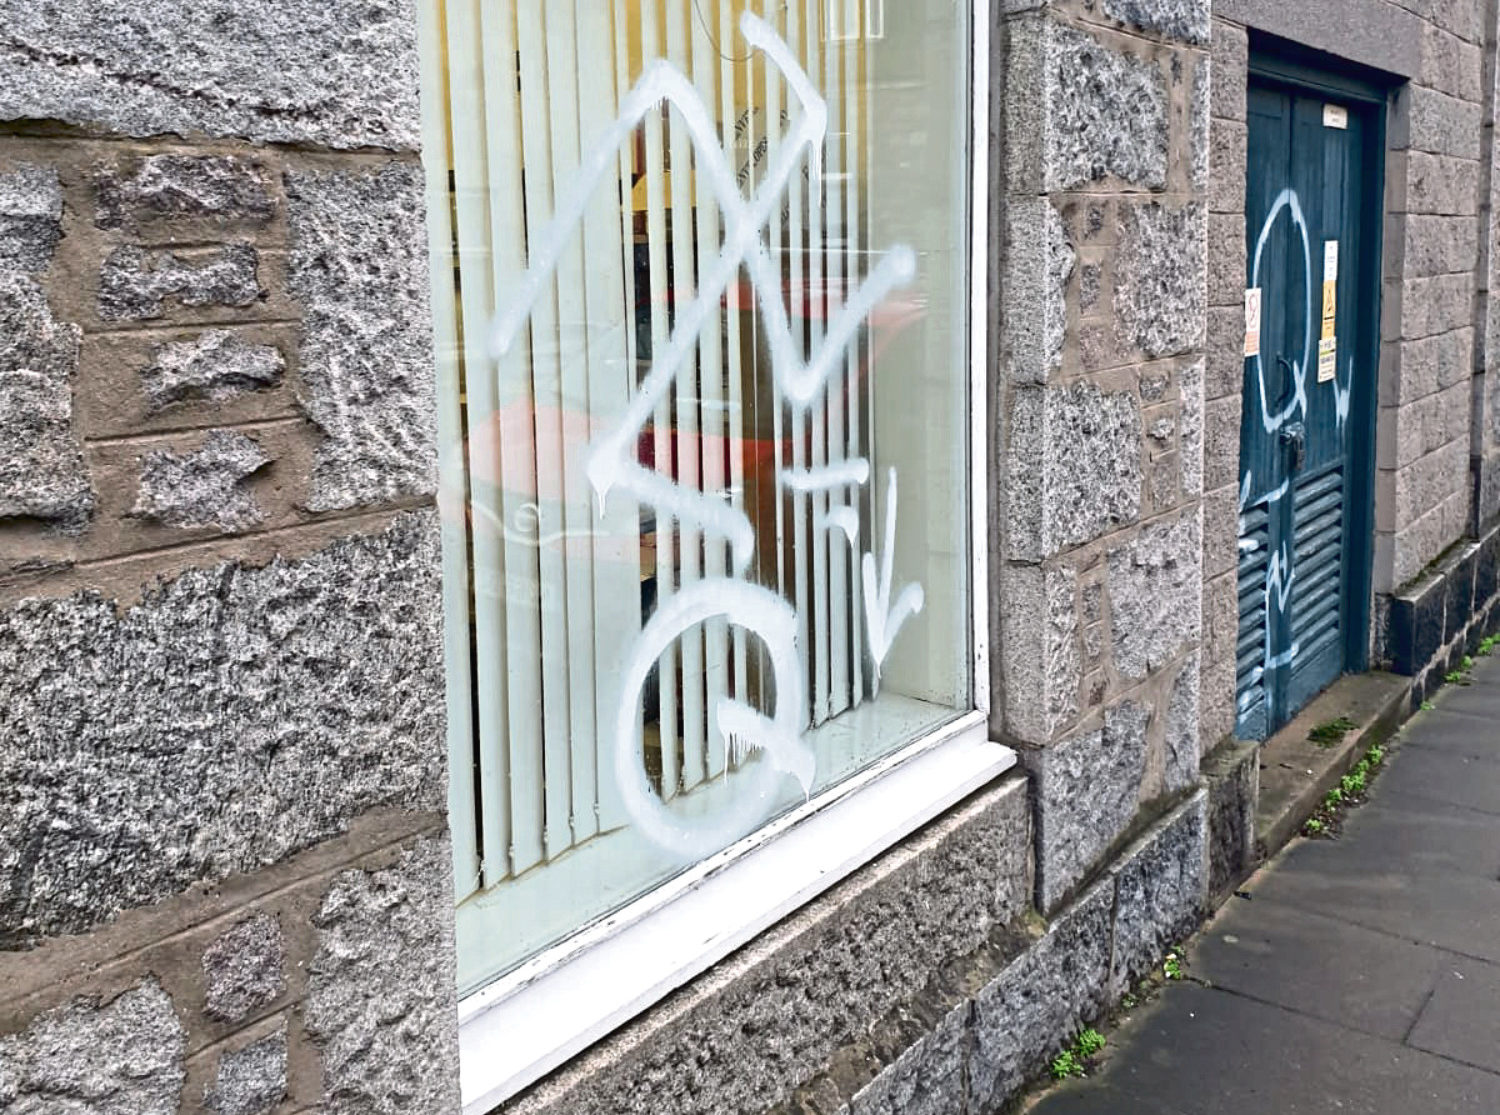 The offensive slurs discovered by staff at the buildings in Aberdeen